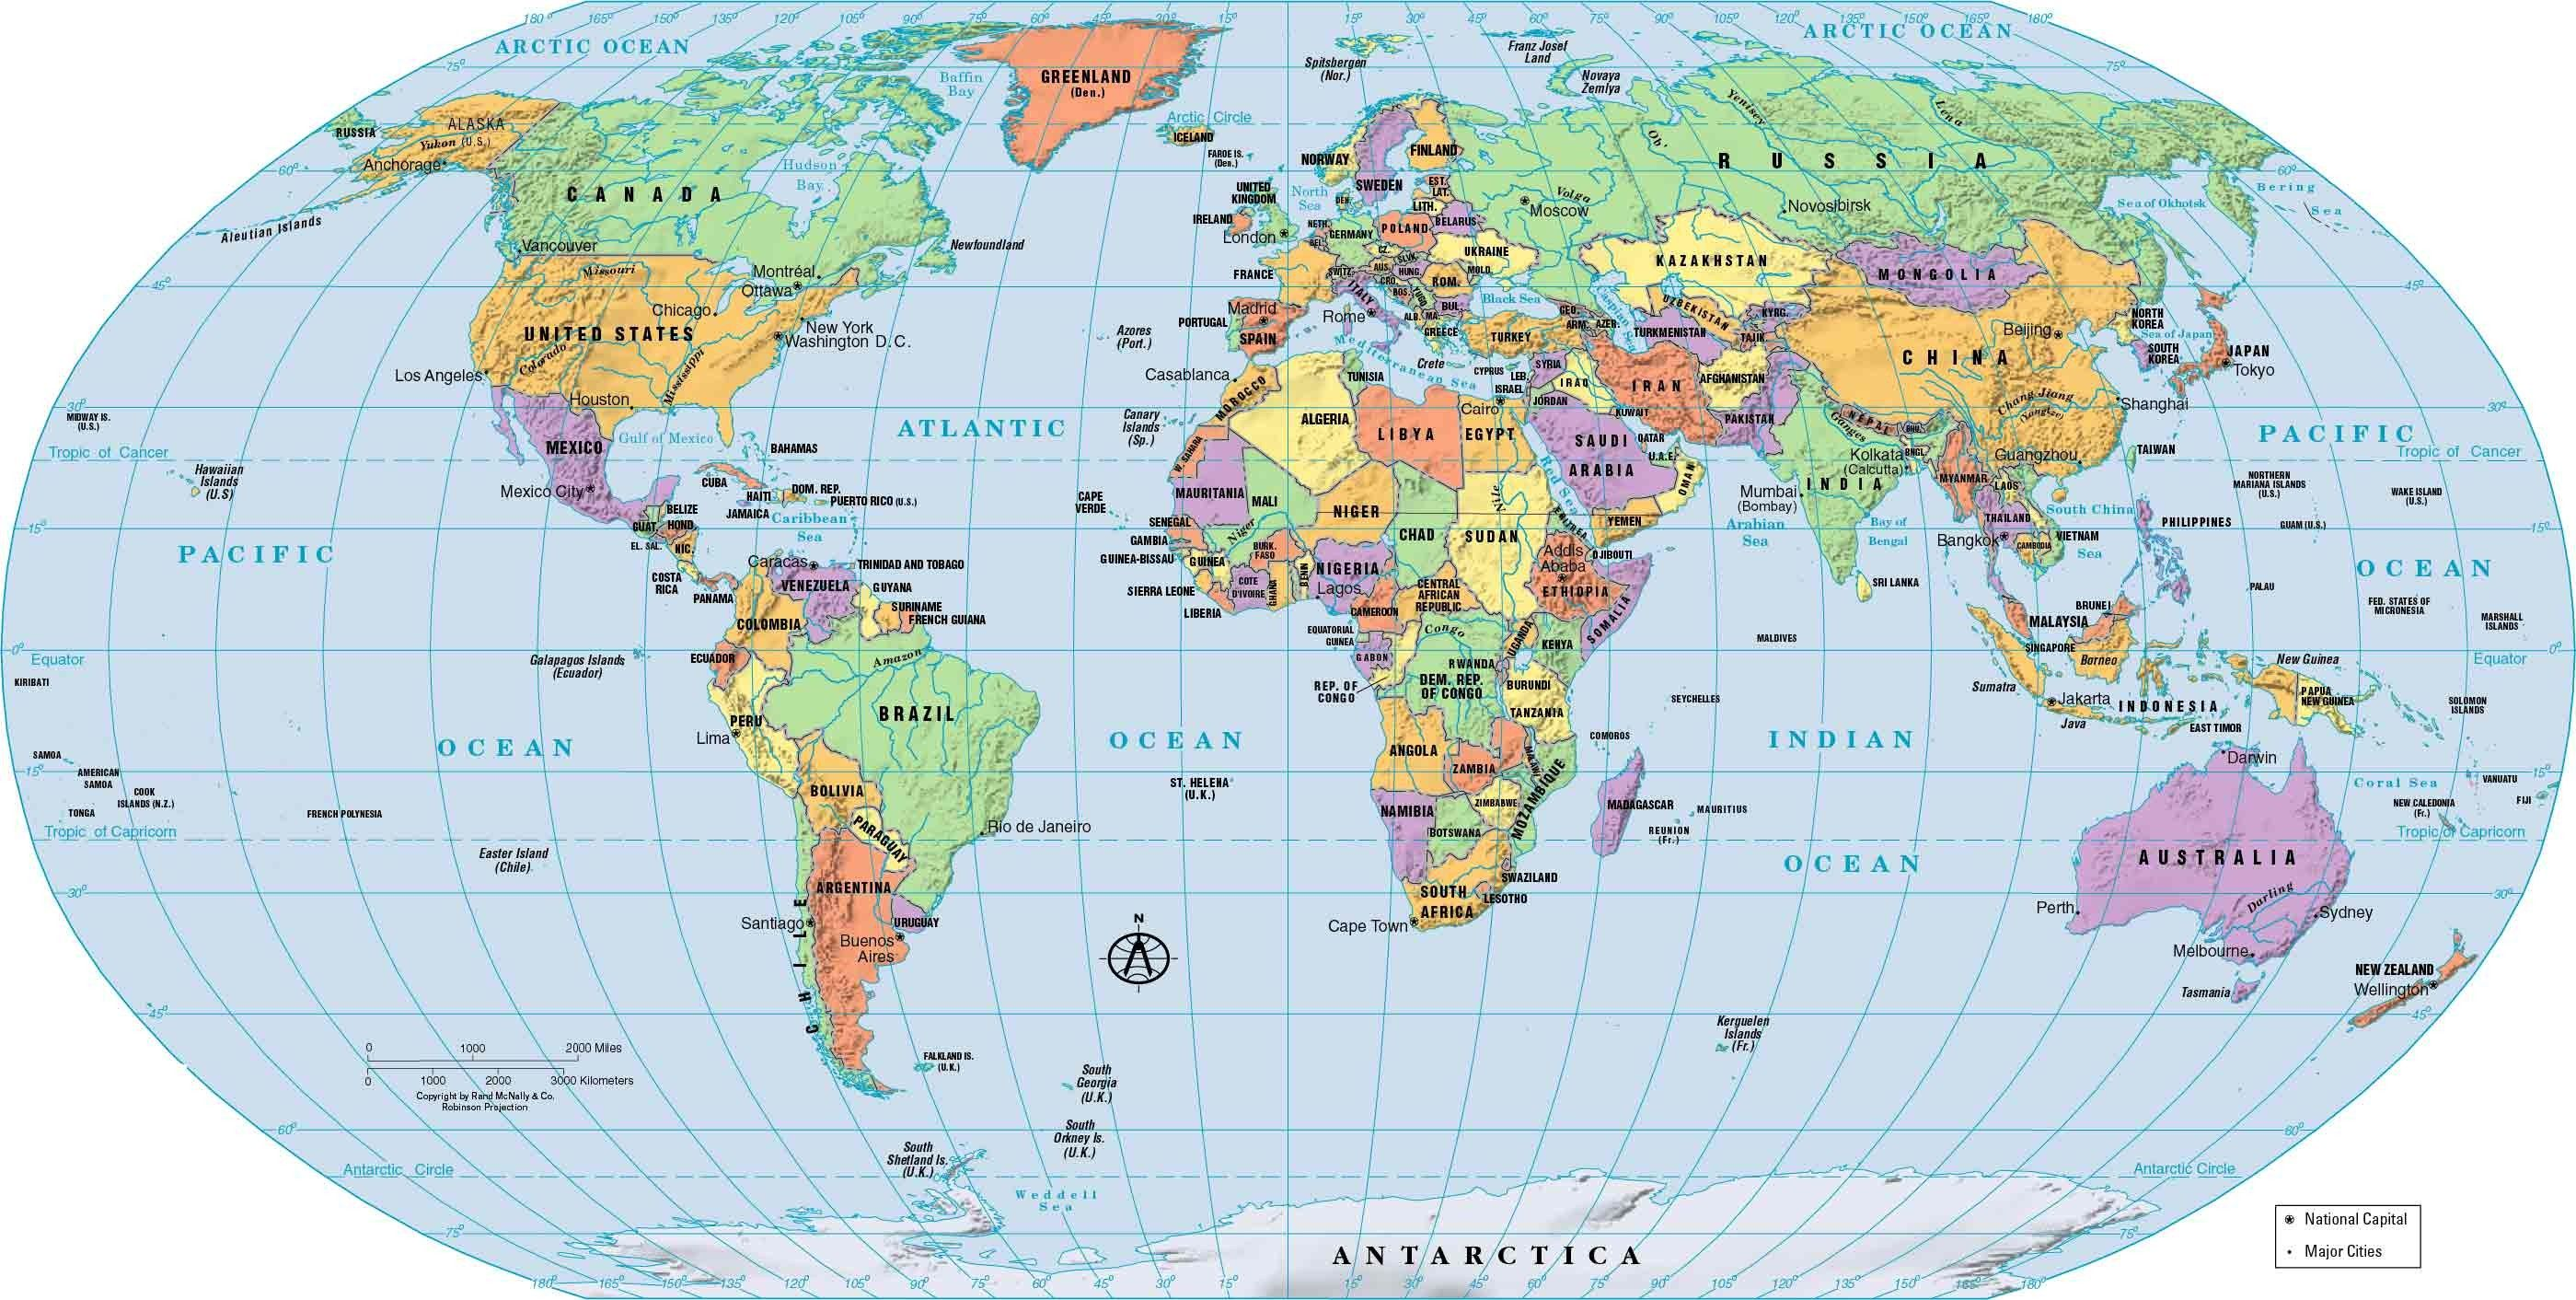 Map Of The Whole World Labeled.Pin By Lihm Wgl On Flat World Map In 2019 World Map Wallpaper